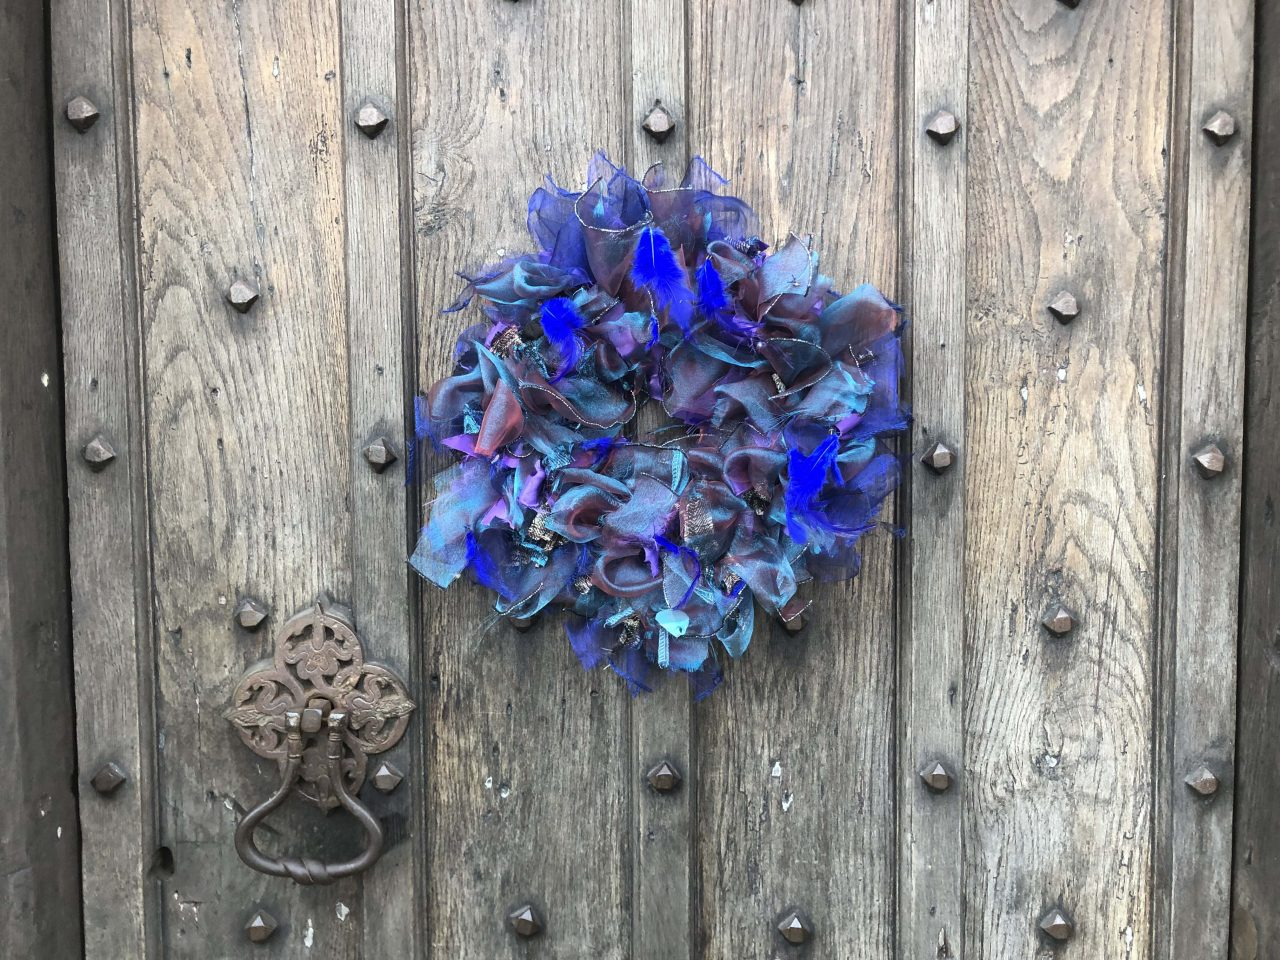 Purple and blue upcycled rag wreath made using an old halloween costume with feathers and shiny voile.